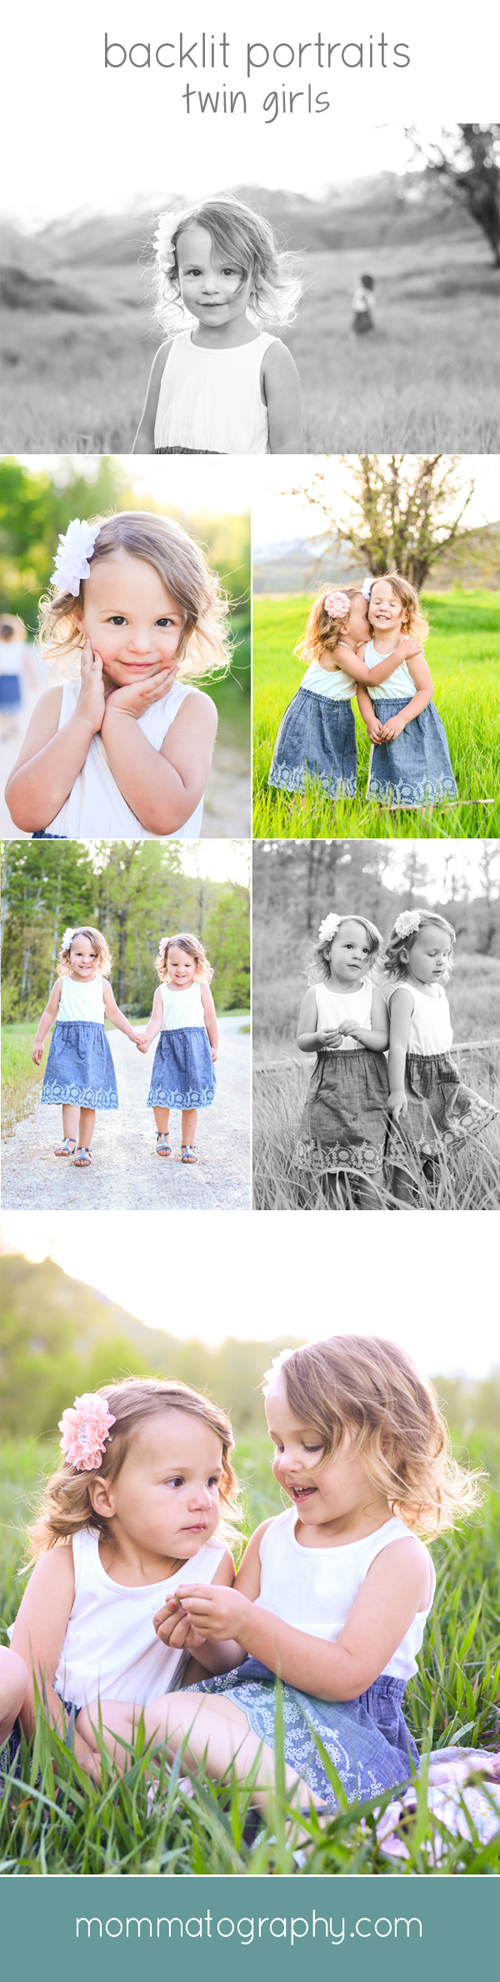 Backlit Portraits/Photography of Kids - Portraits of Twin Girls - www.mommatography.com